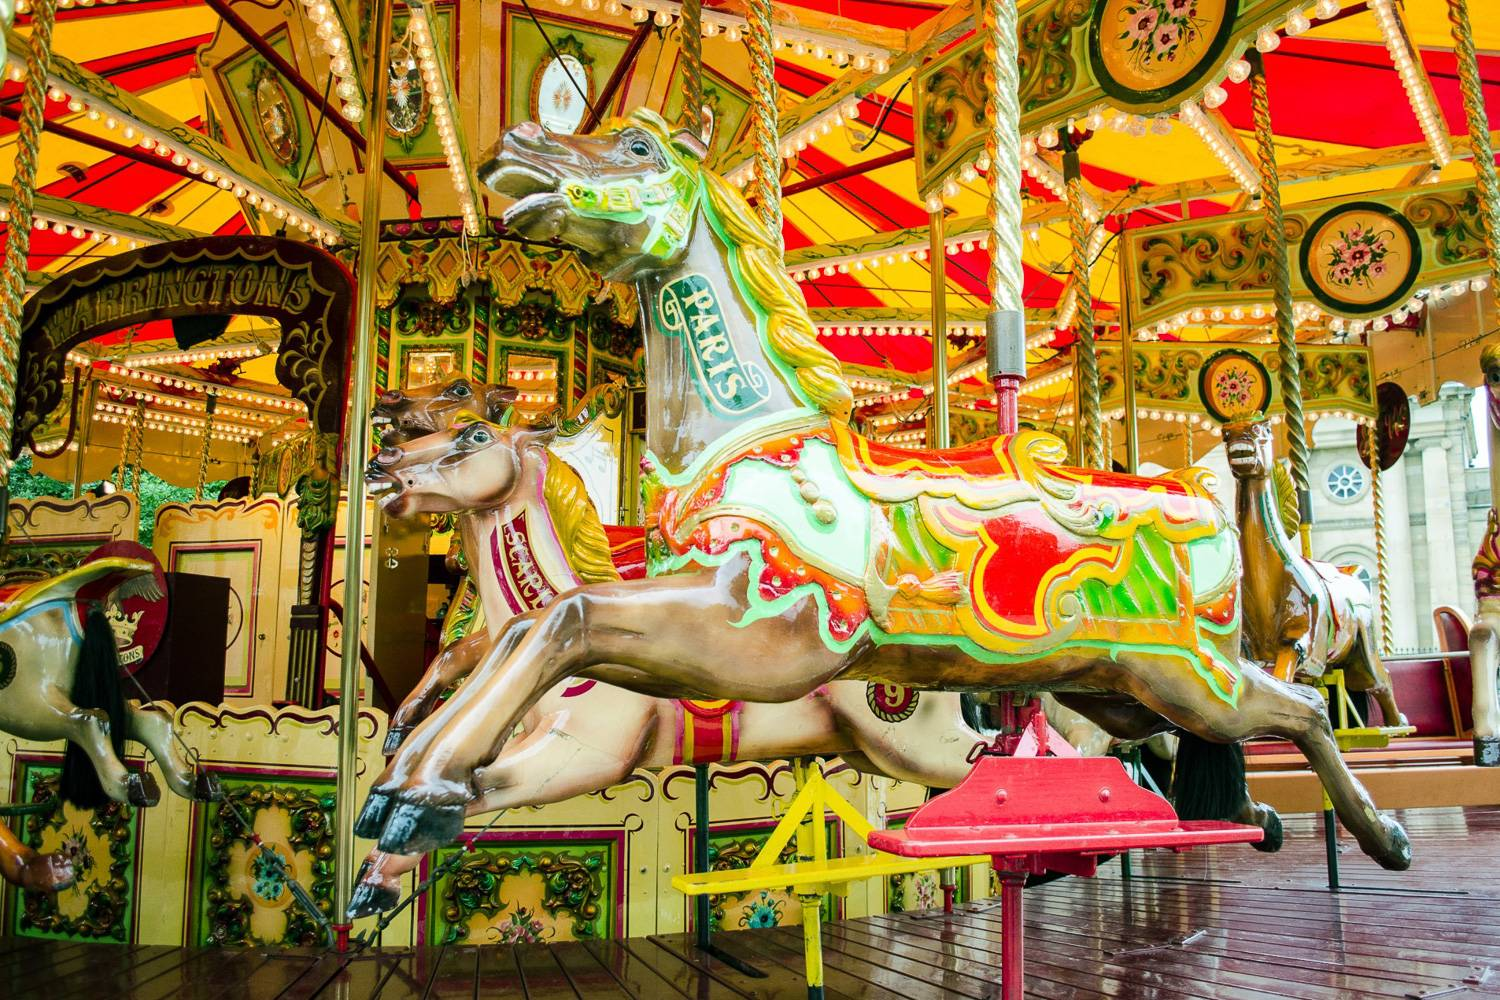 Image of carousel horses at a carnival.